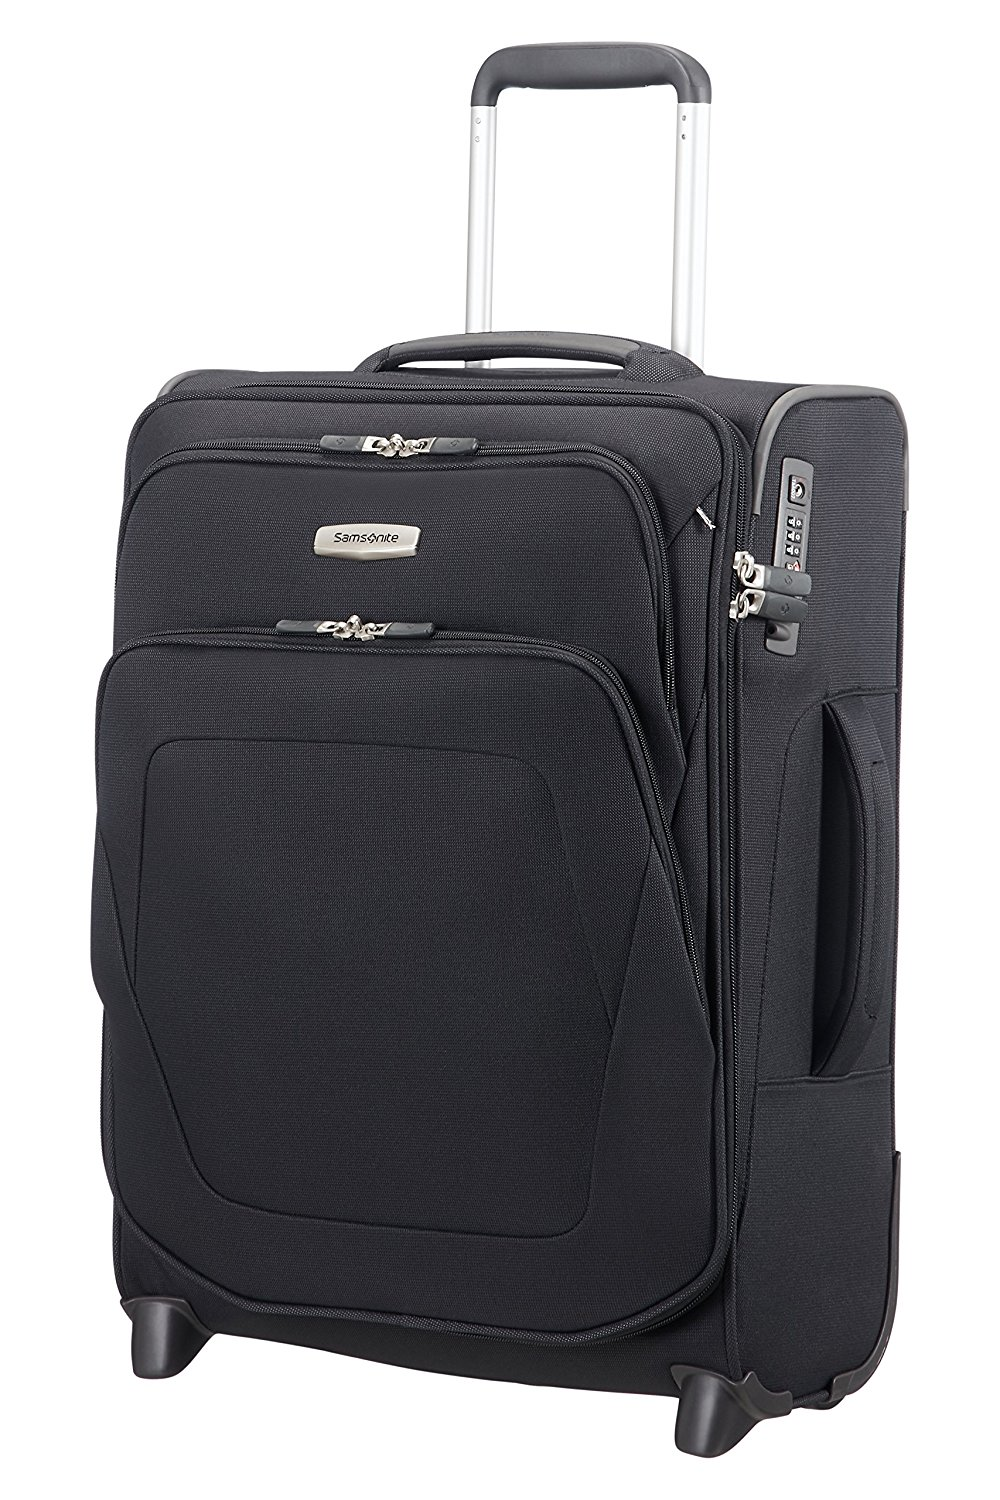 SAMSONITE Spark SNG - Upright 55/20 Expendable Length 40cm Bagage cabine, 55 cm, 48,5 liters, Schwarz